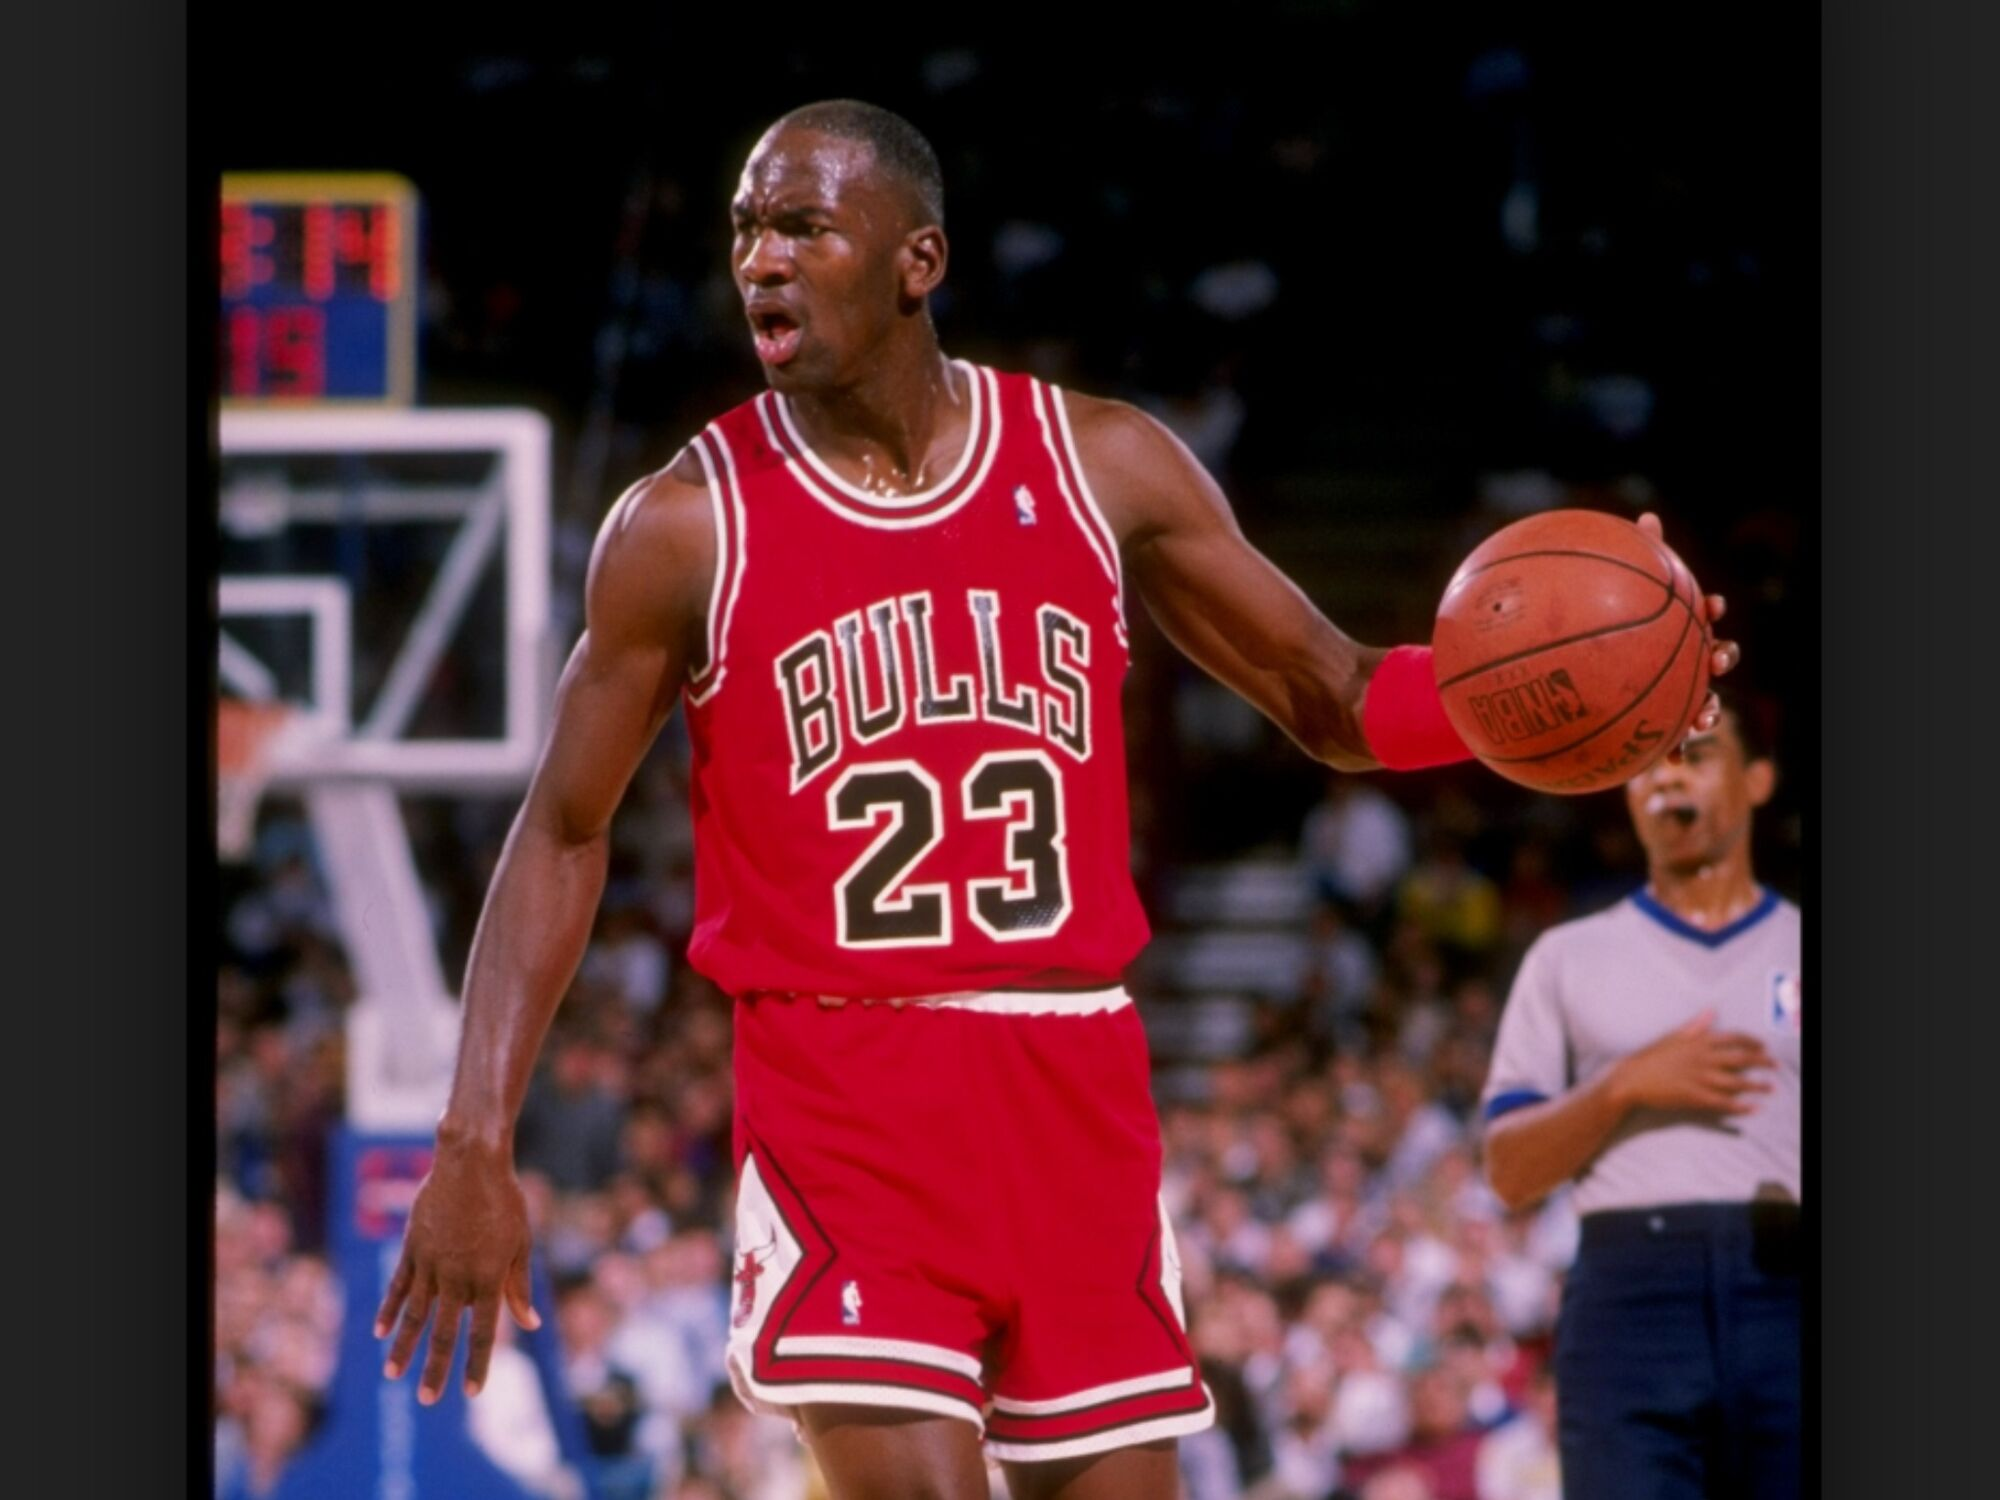 Basketball Players: Category:Players Who Wear/wore Number 23